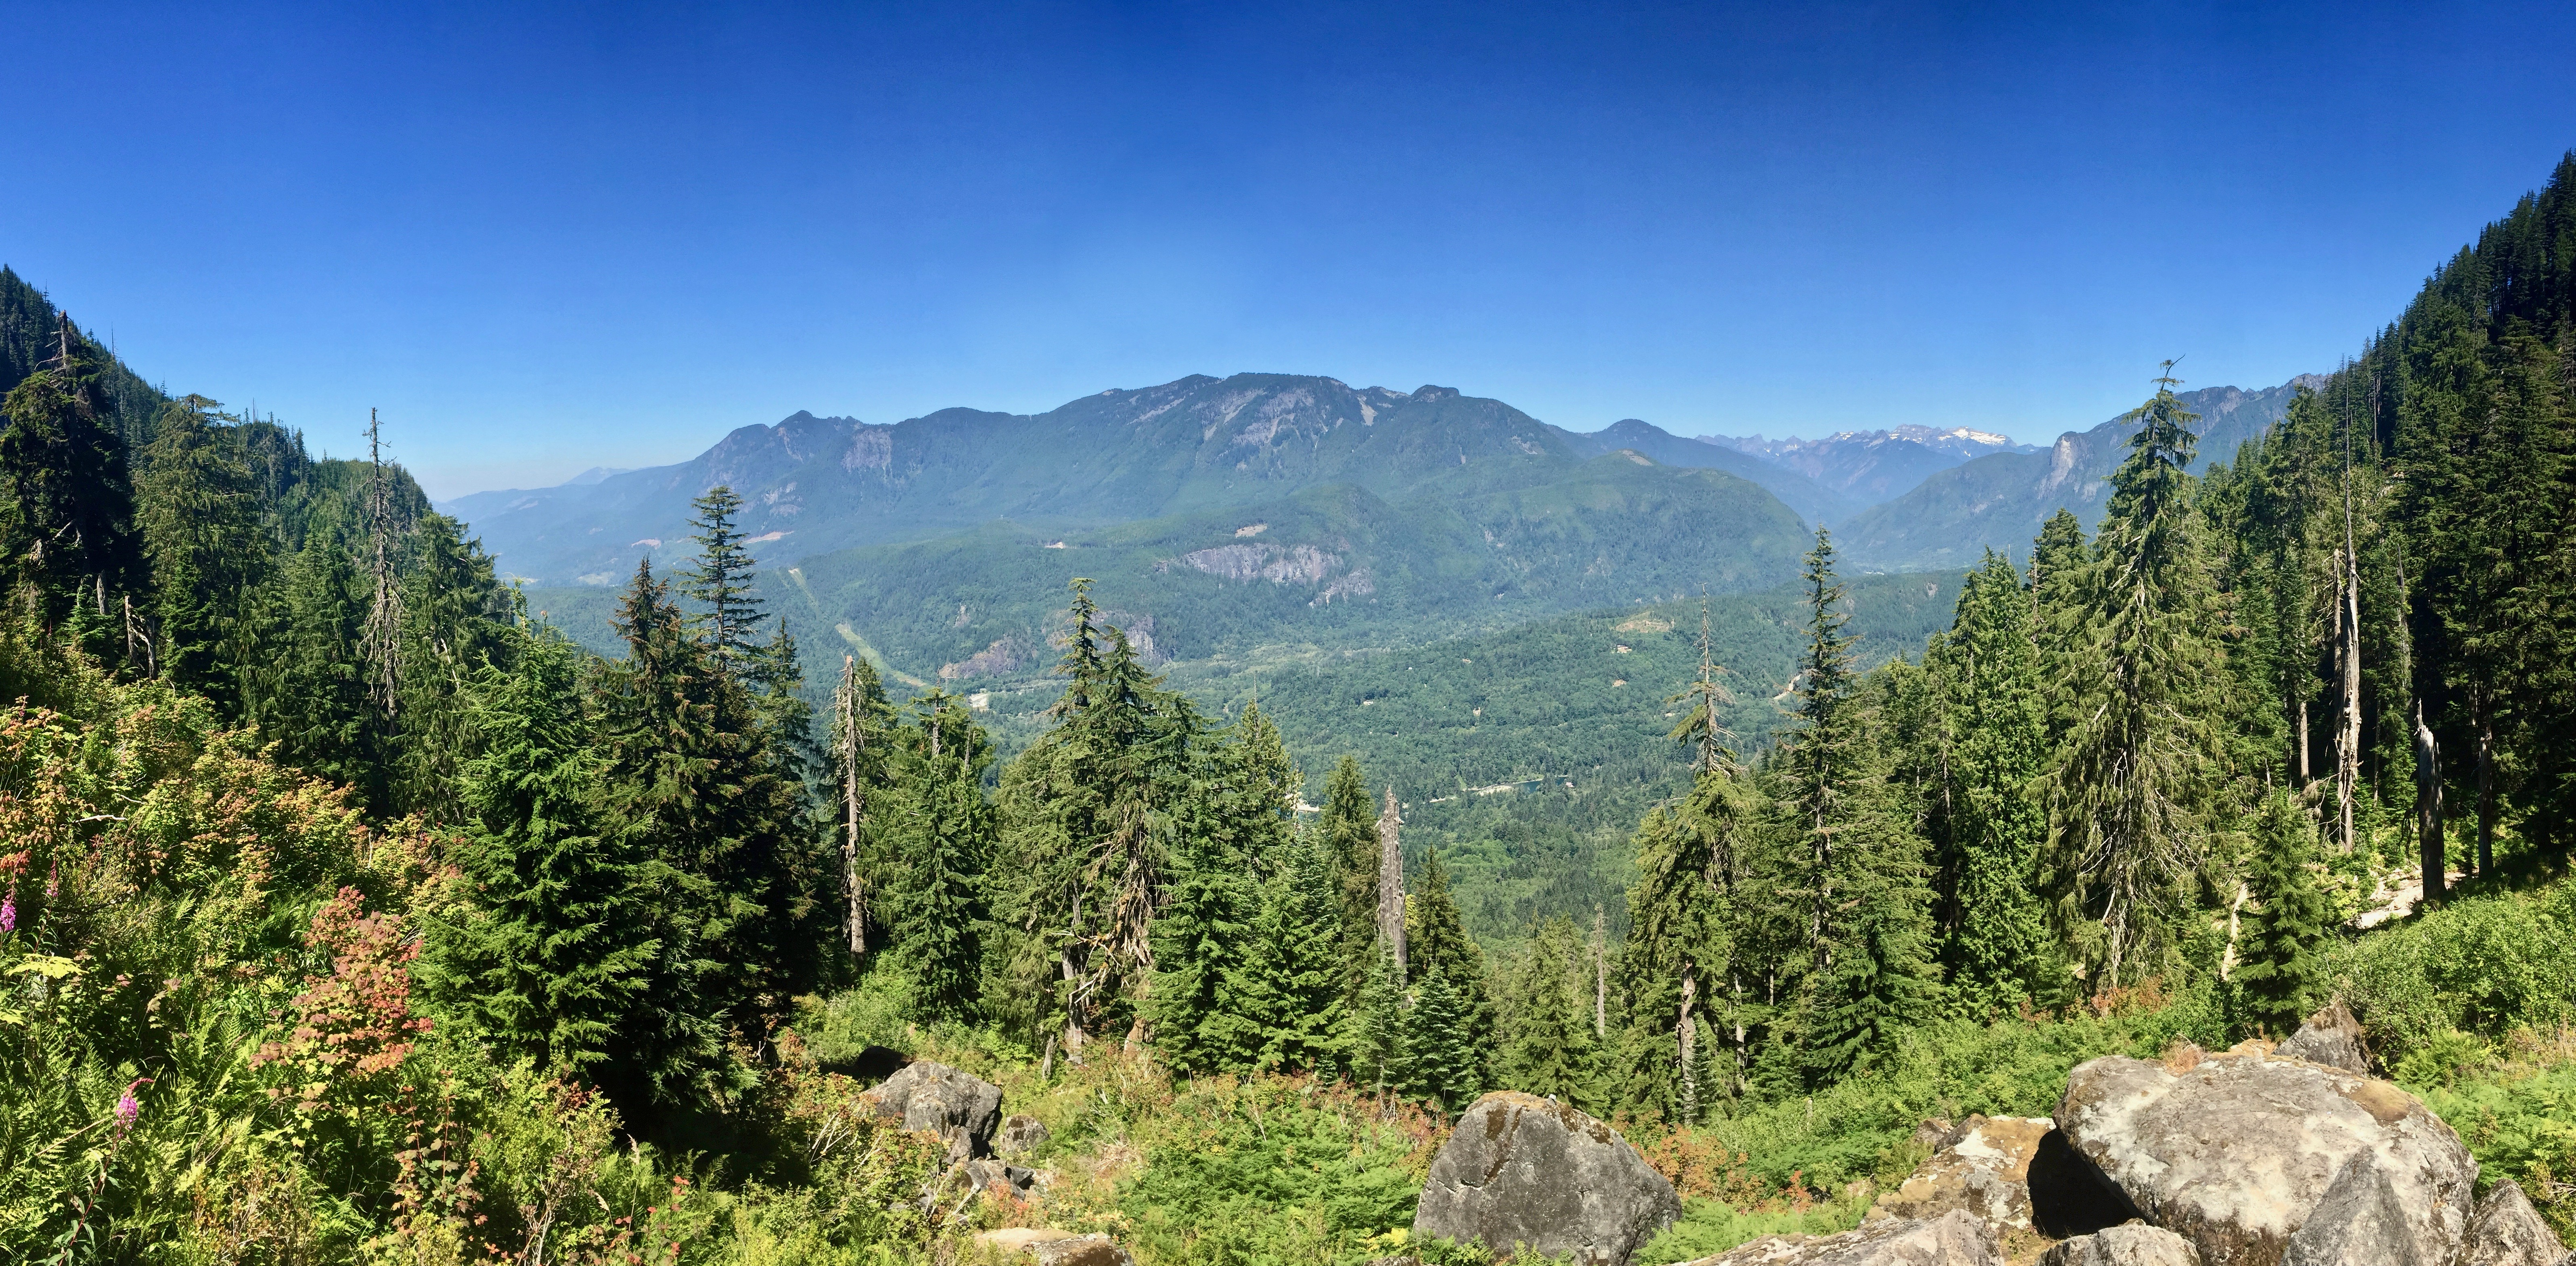 From boulder-strewn forest clearings near the lake, views stretch across the Skykomish River Valley below. Lake Serene Trail, July 31, 2017.